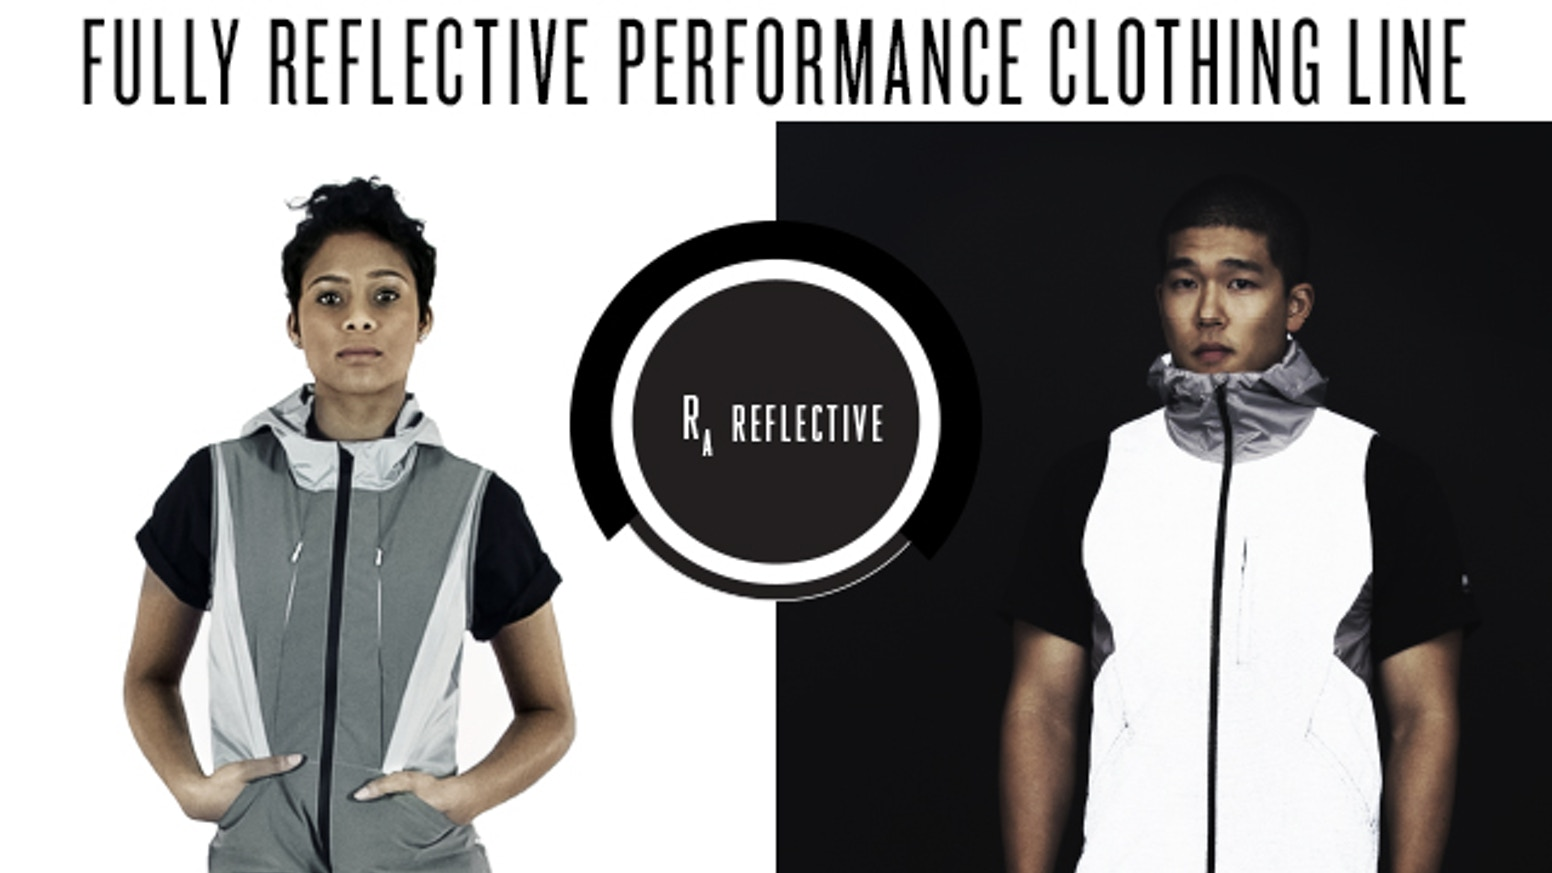 We saw the options for affordable area-reflective clothing, and knew we could do better.